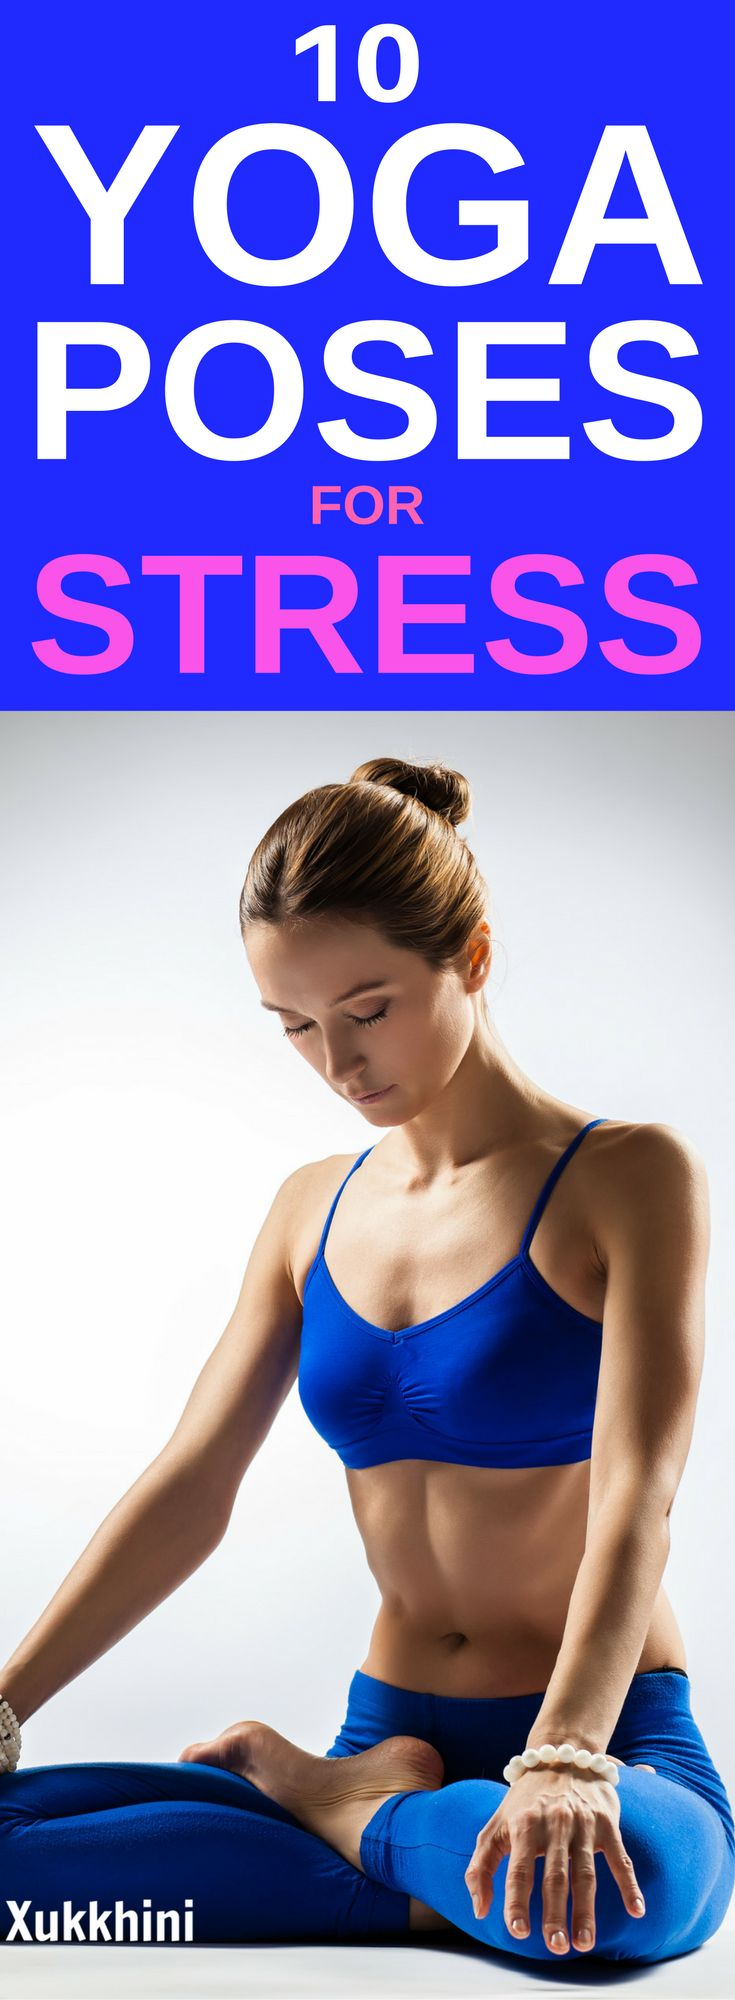 Known in the fitness world for helping increase strength and flexibility, yoga i...